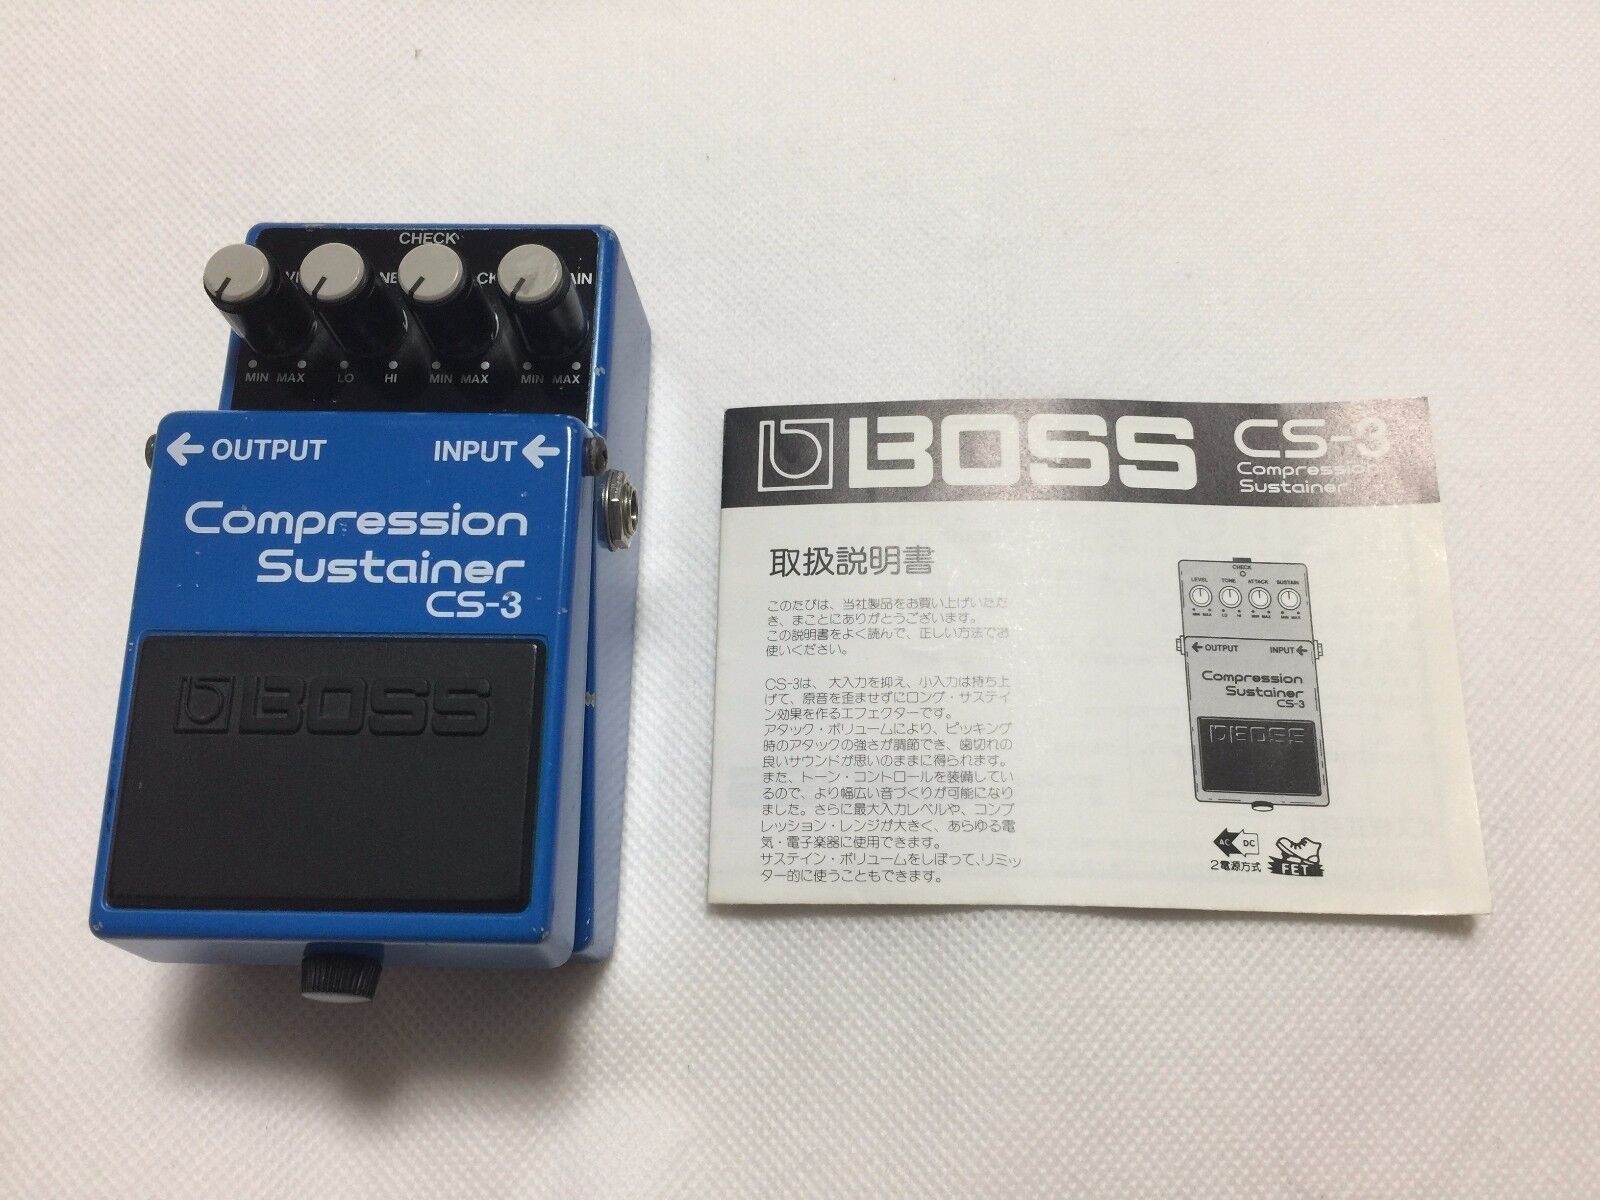 Used  BOSS CS-3 Compression Sustainer Vintage Guitar Effect Pedal Made in Japan